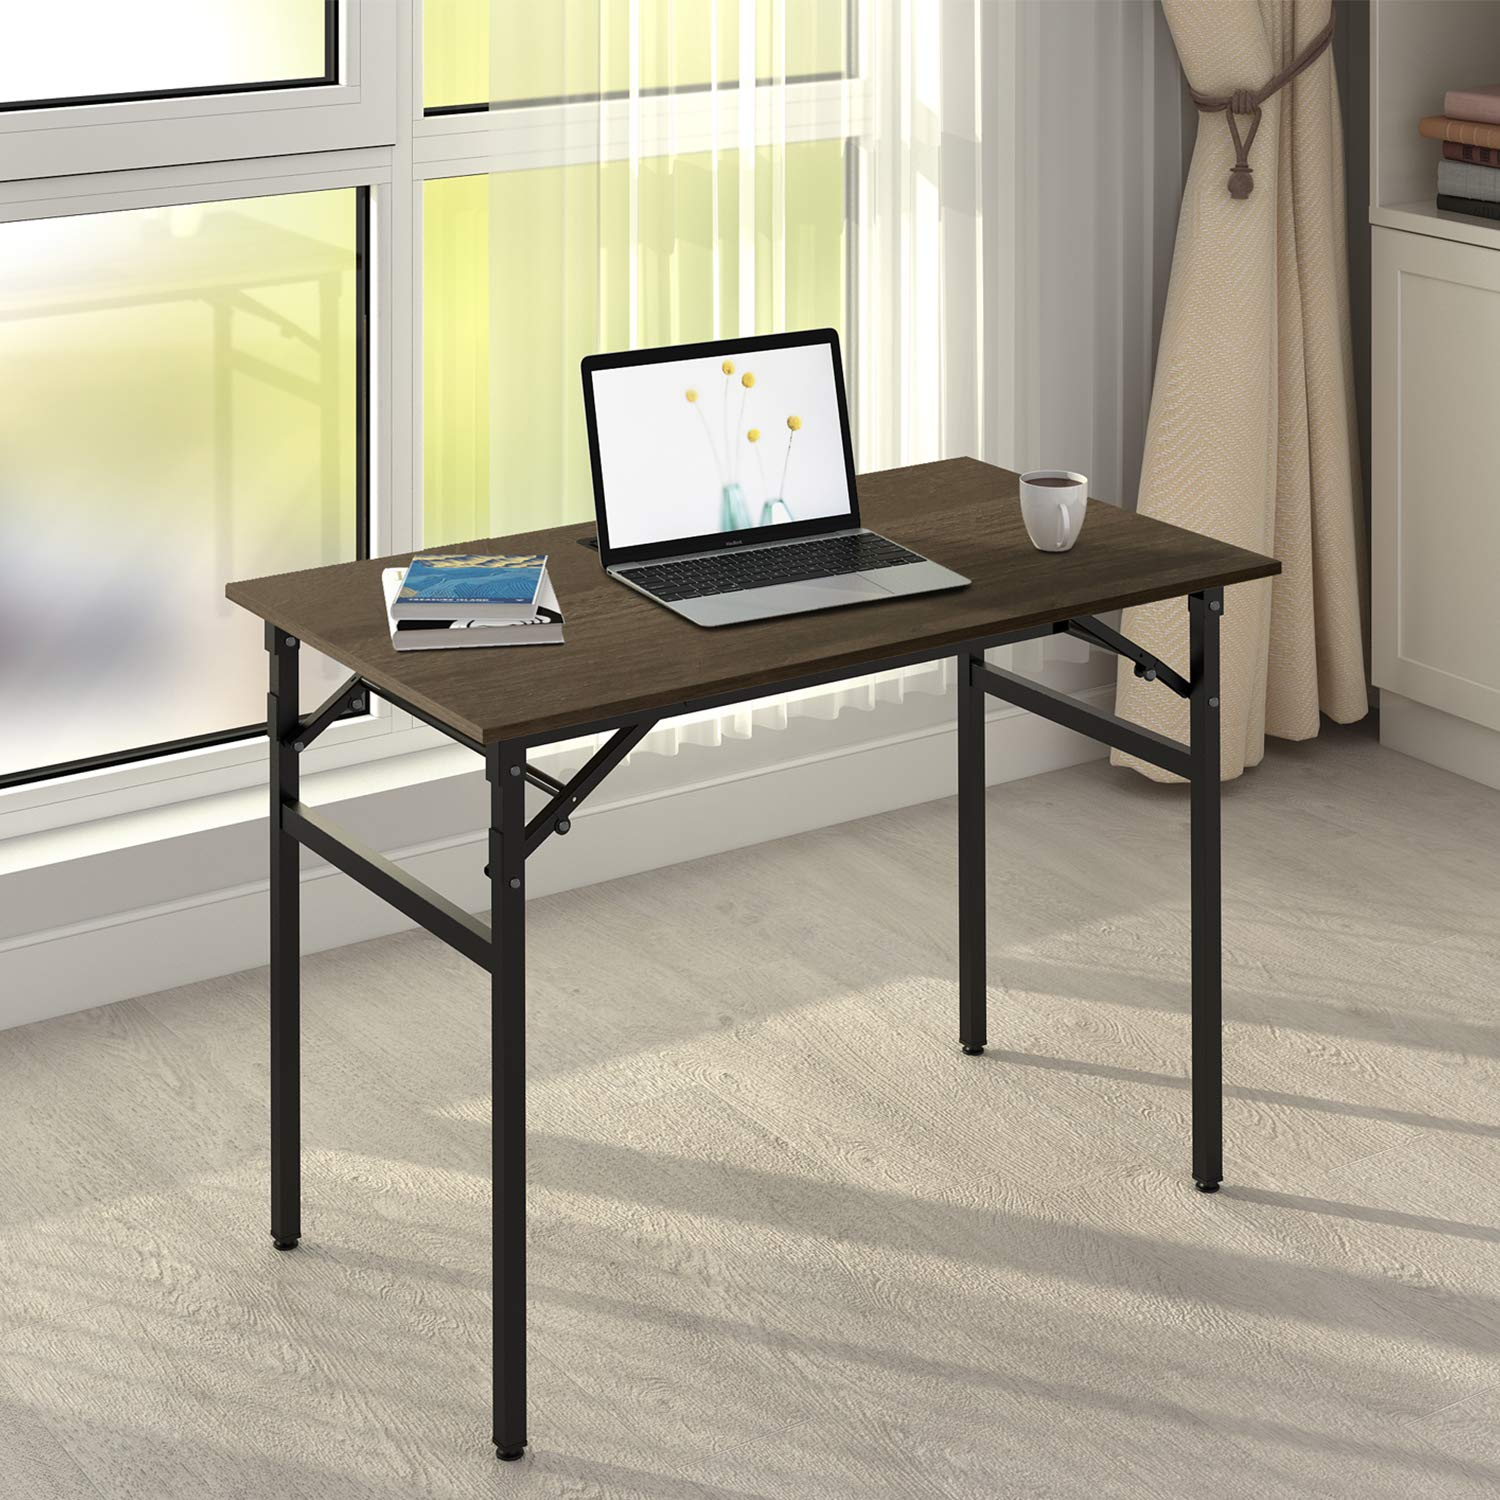 DEVAISE 42'' Folding Computer Desk No Assembly, Laptop PC Workstation, Study Writing Table for Home Office by DEVAISE